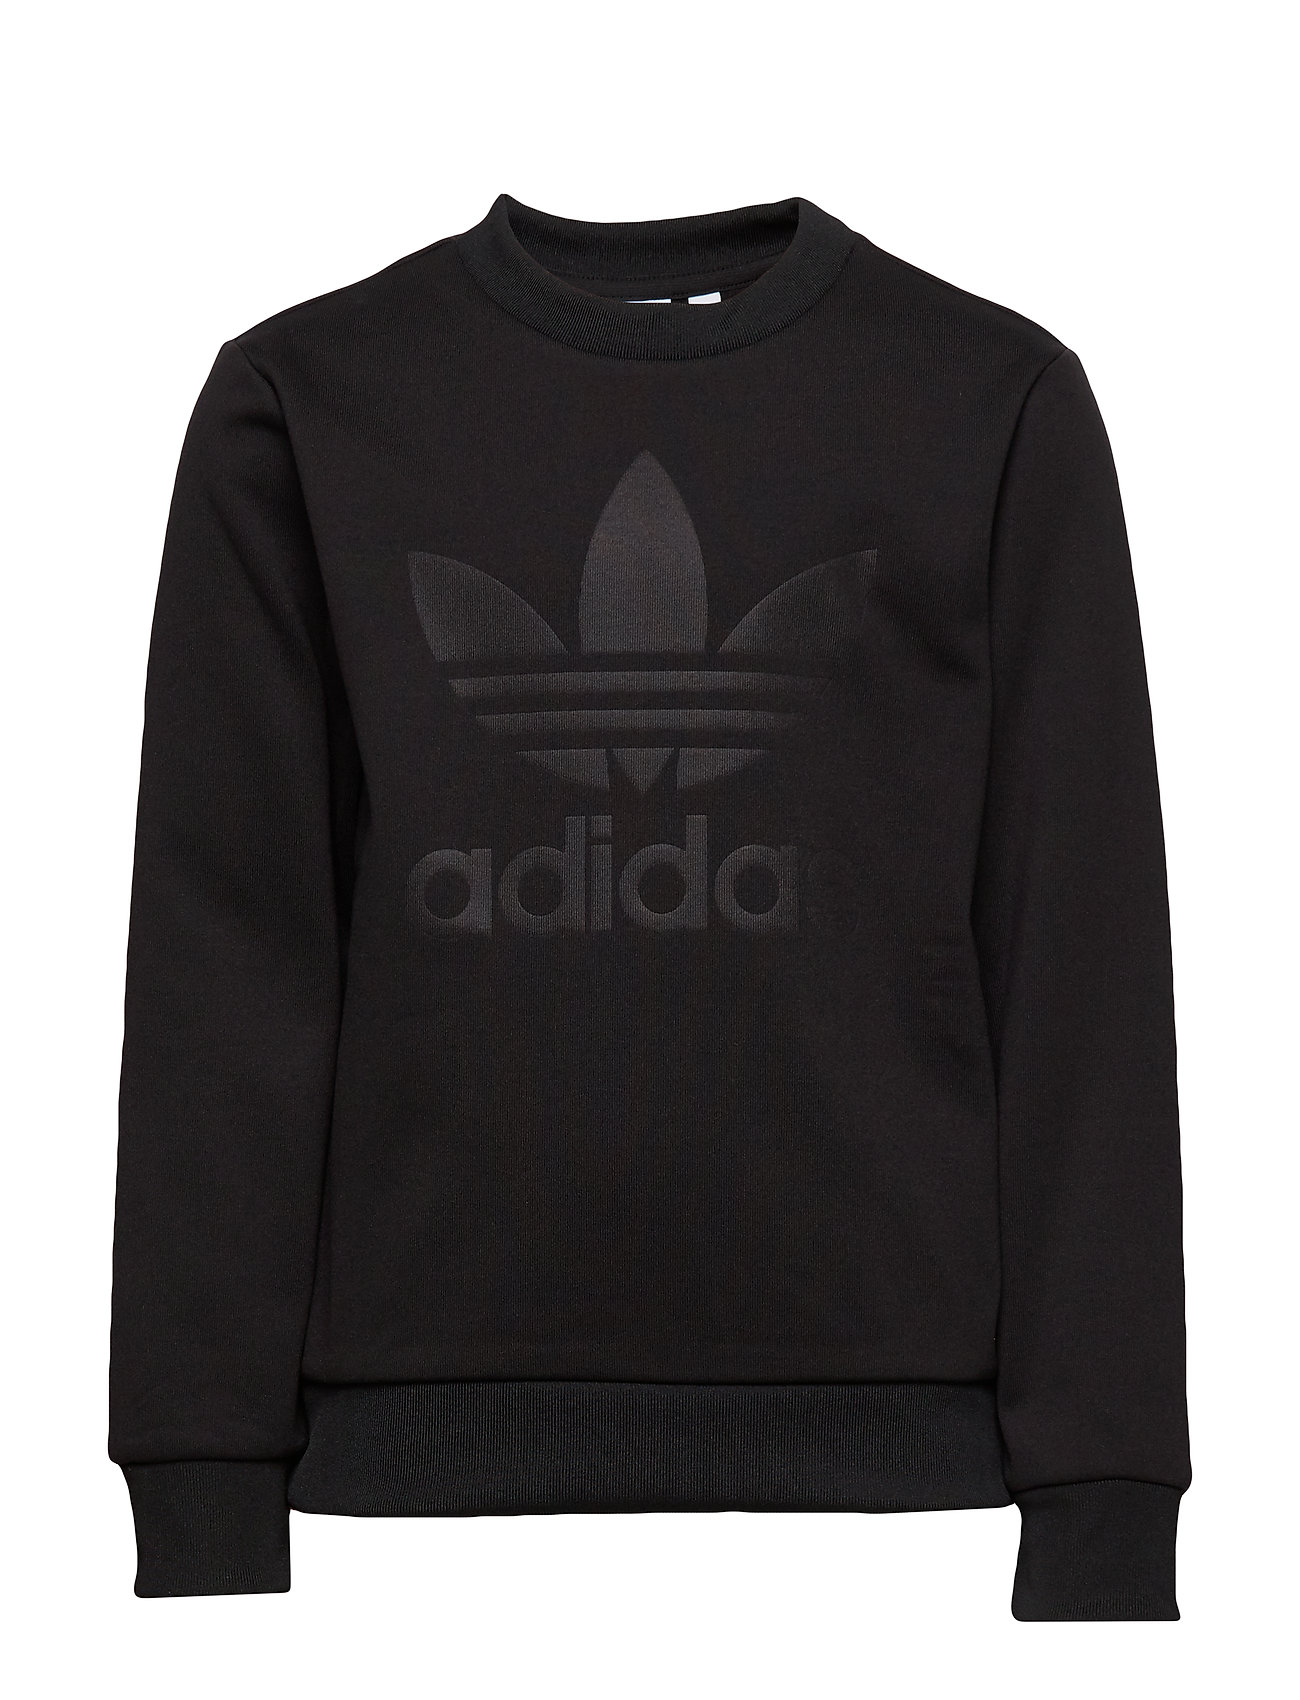 adidas Originals DEBOSSED CREW - BLACK